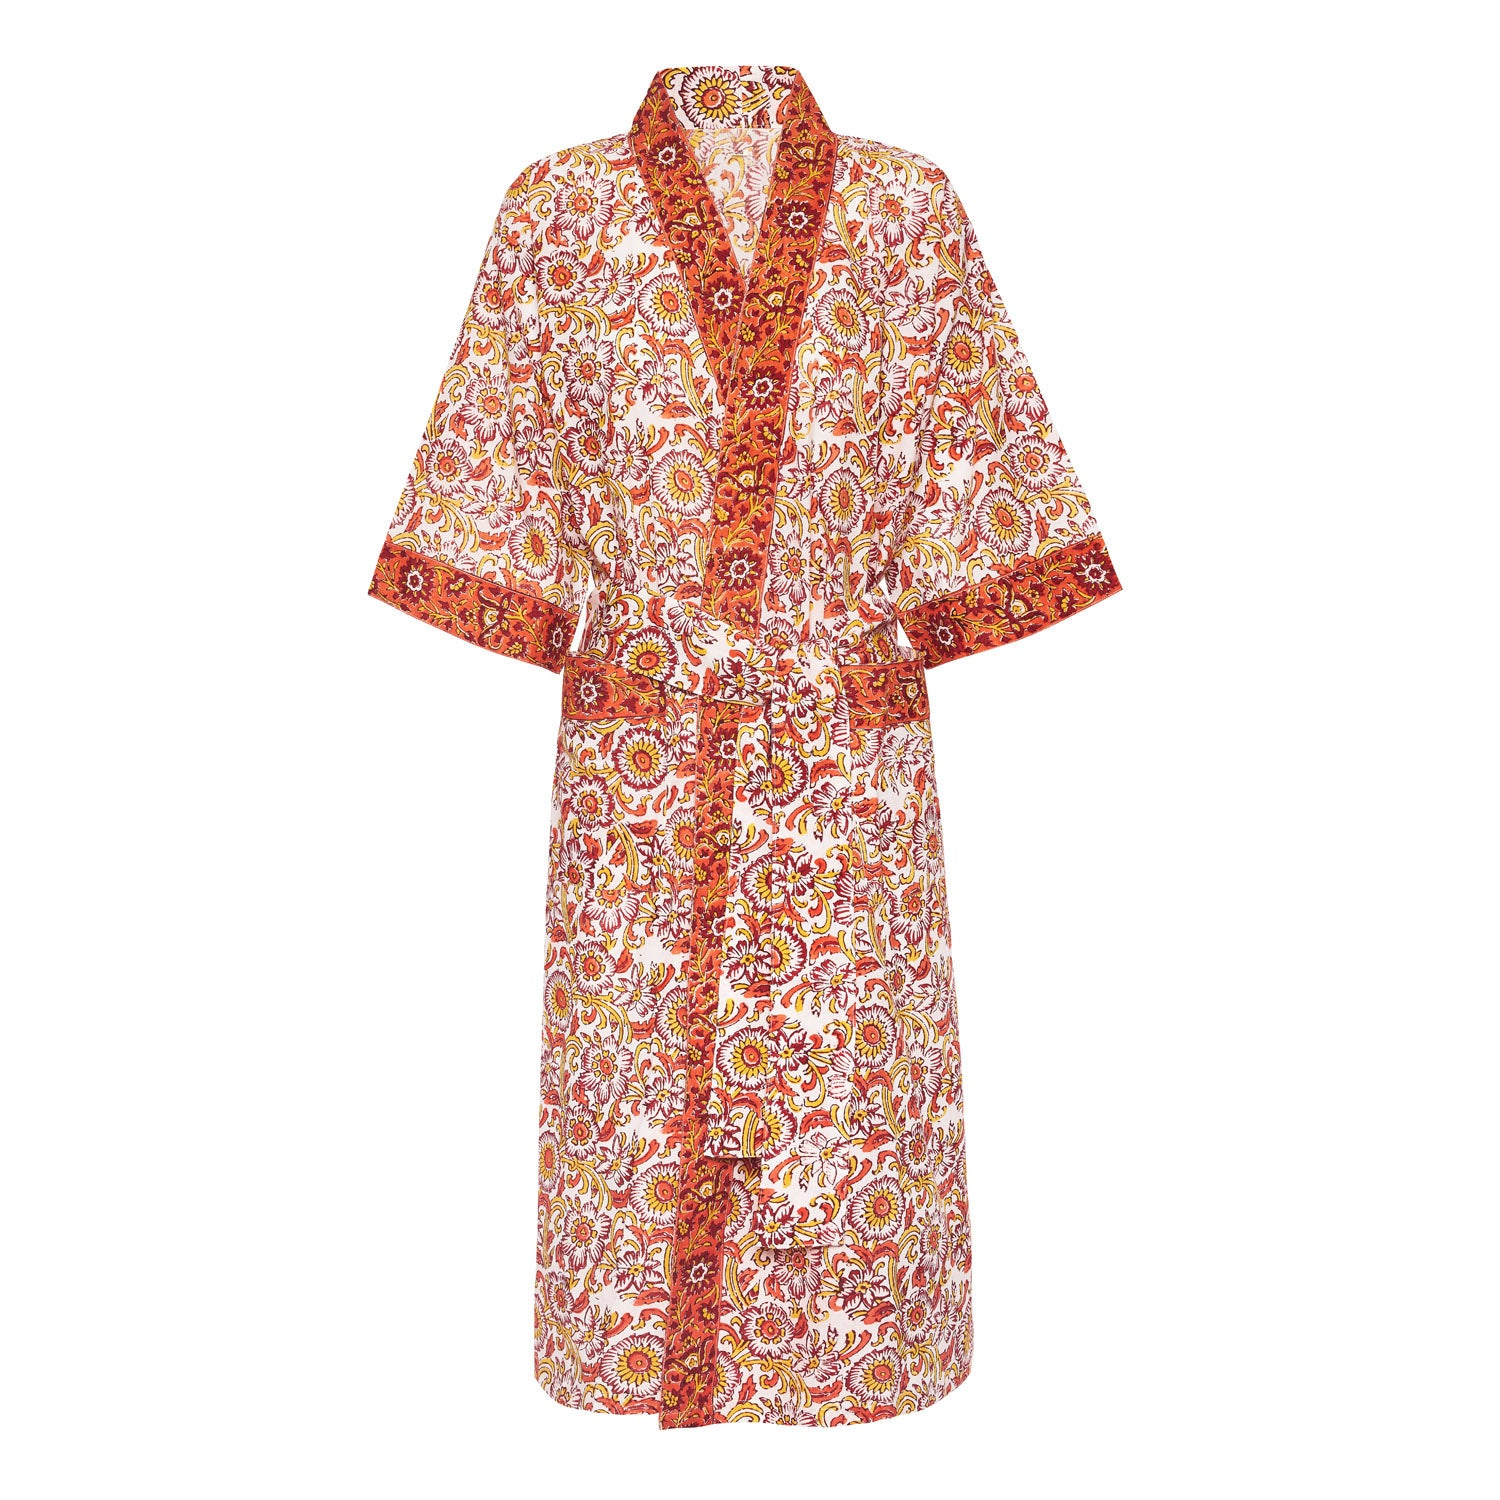 Ladies Dressing Gown - Red and Orange Floral – Indian Ocean Cotton